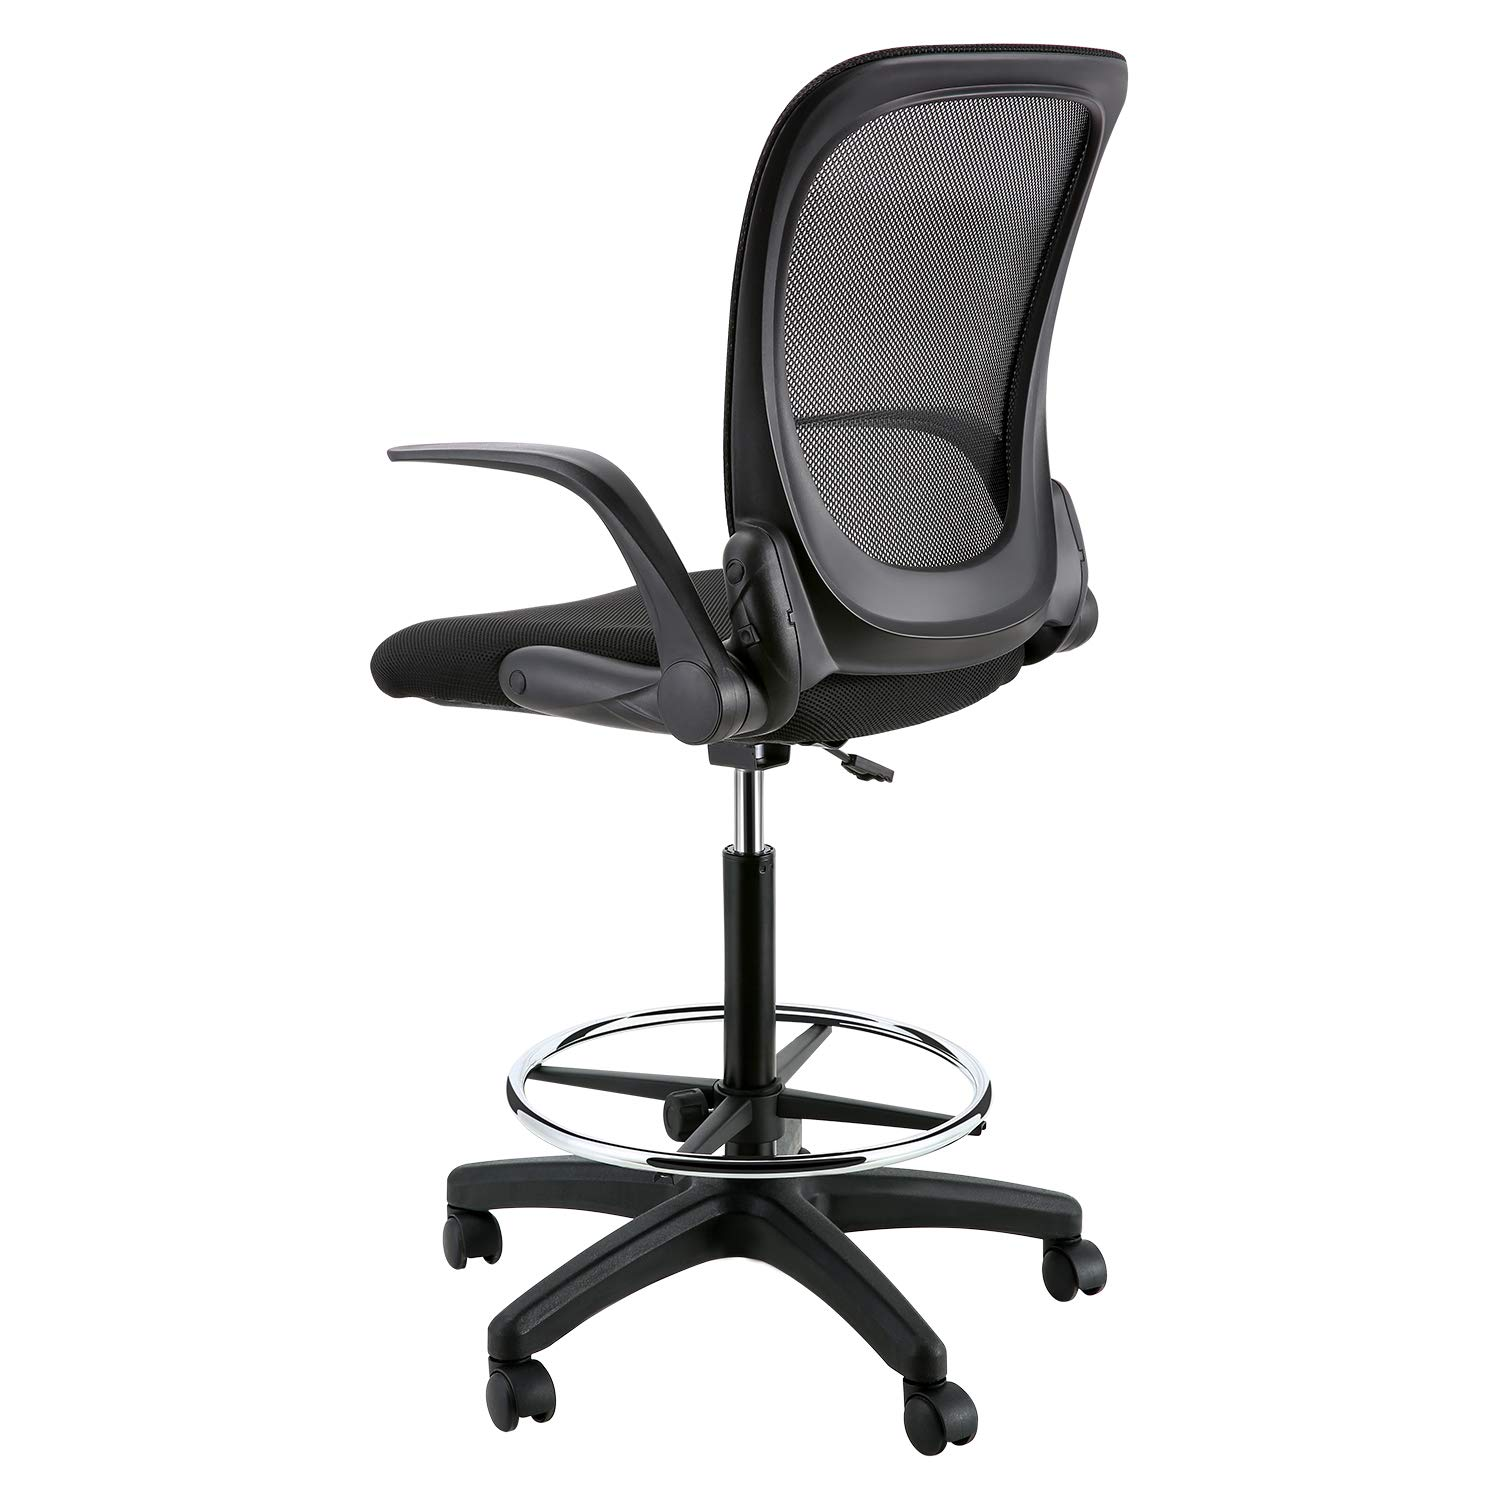 YOUNIS Drafting Chair with Black Fabric Seat, Adjustable Armrest and Foot Ring, Black Breathable mesh backrest, Reception Desk Chair, Tall Office Chair by YOUNIS (Image #5)